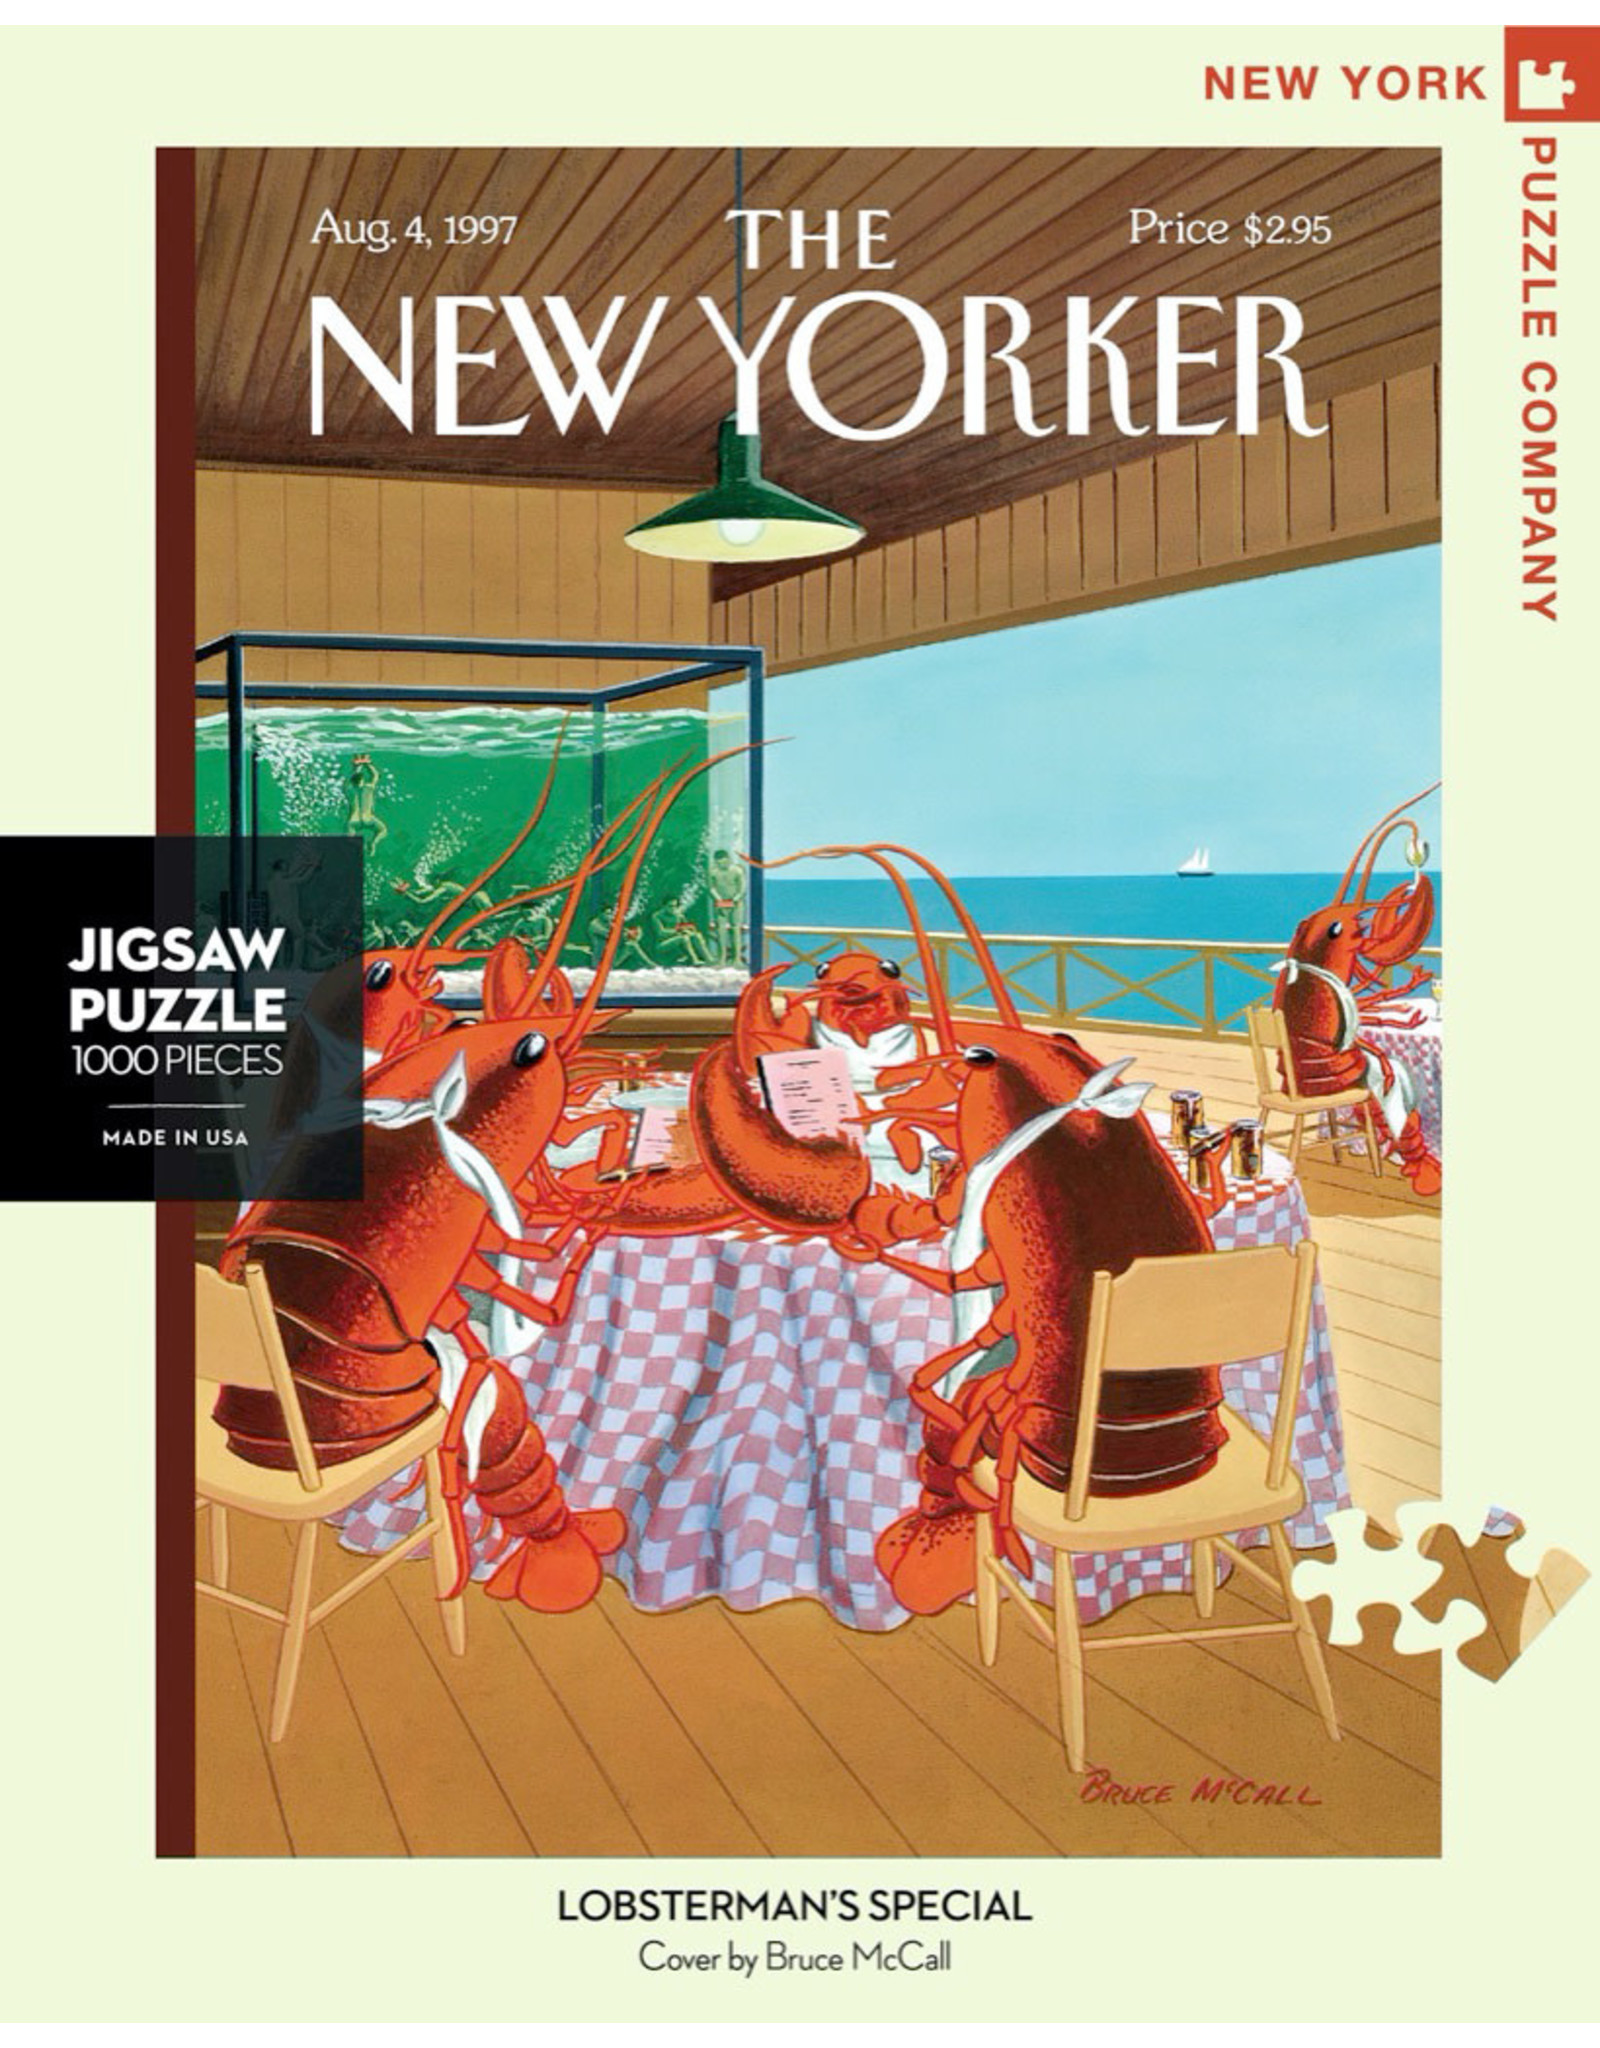 The New Yorker NYPC 1000 Pc Puzzle – Lobstermans Special